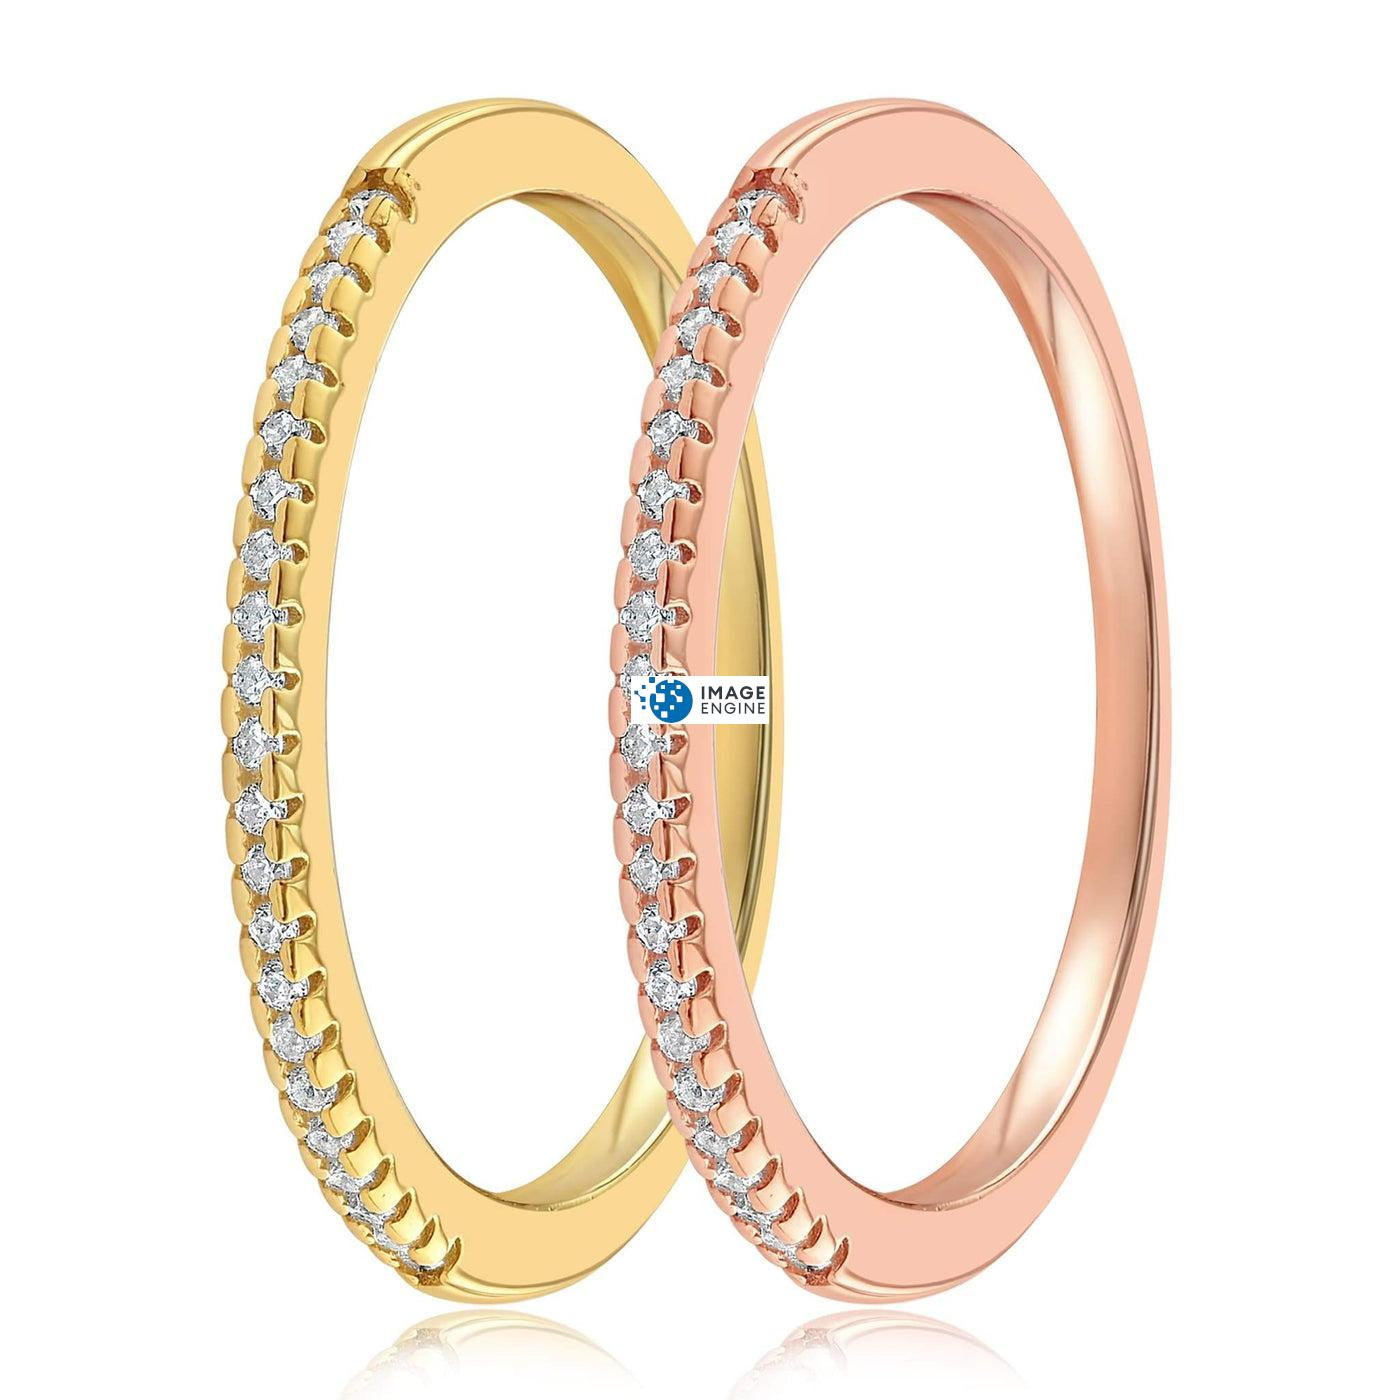 Brianna Bezel Ring - SideBy Side - 18K Yellow Gold Vermeil and 18K Rose Gold Vermeil